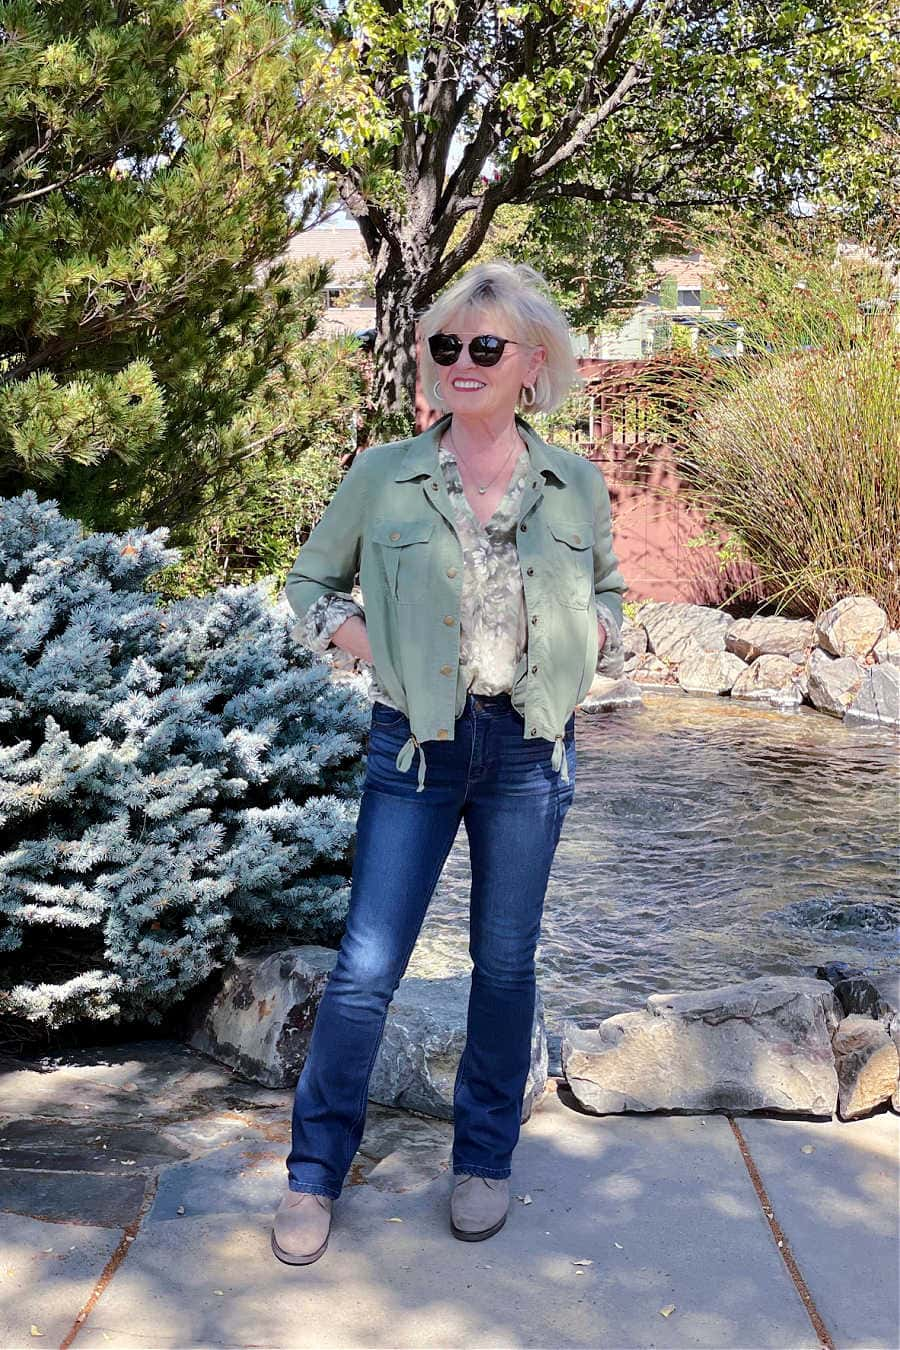 over 50 blogger wearing floral blouse, green jacket and jeans from Nordstrom